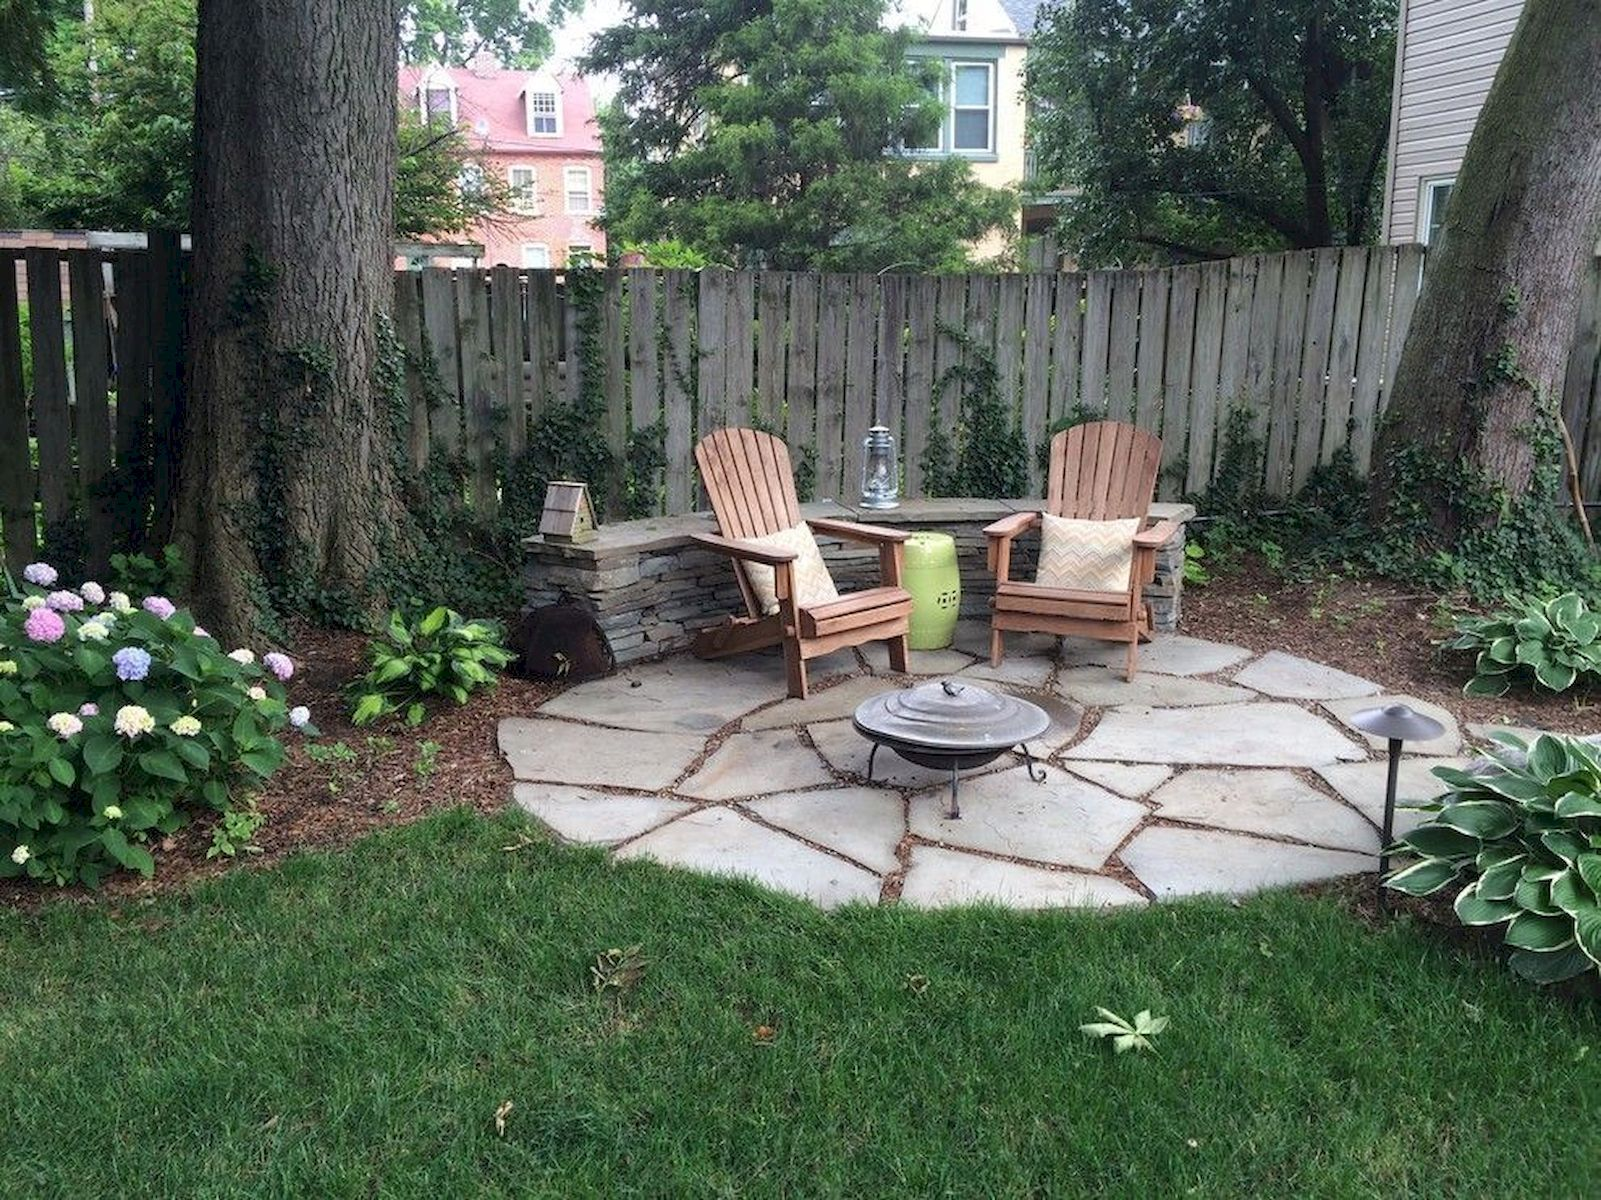 52 Most Creative Backyard Patio Ideas on A Budget (16 in ...